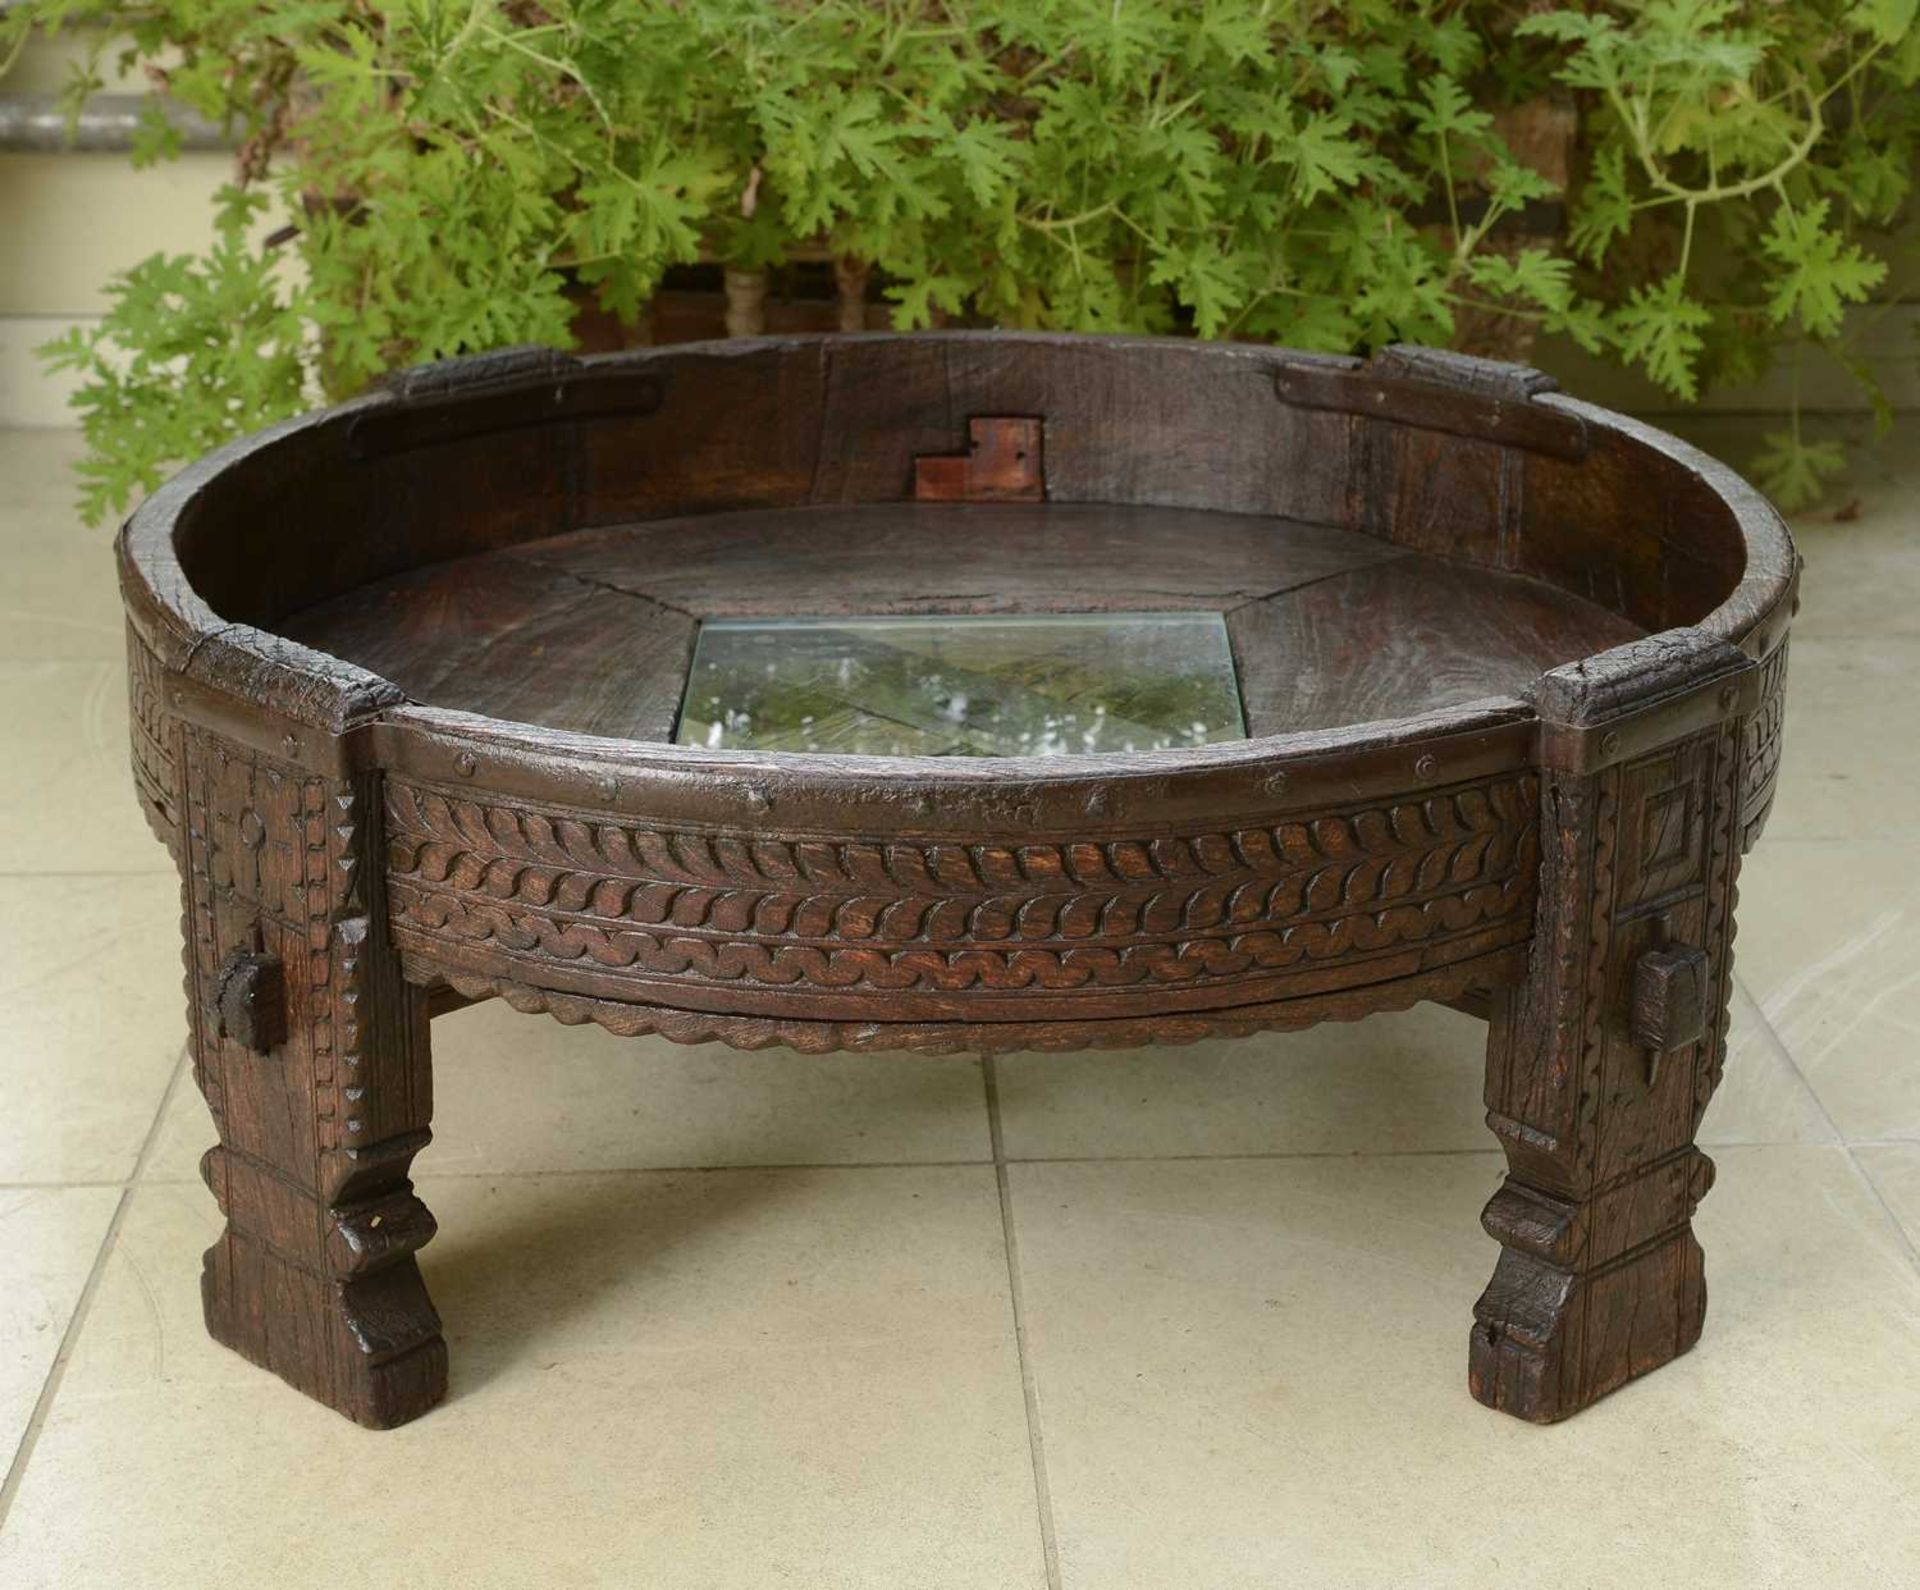 A rustic hardwood low coffee table, - Image 2 of 5